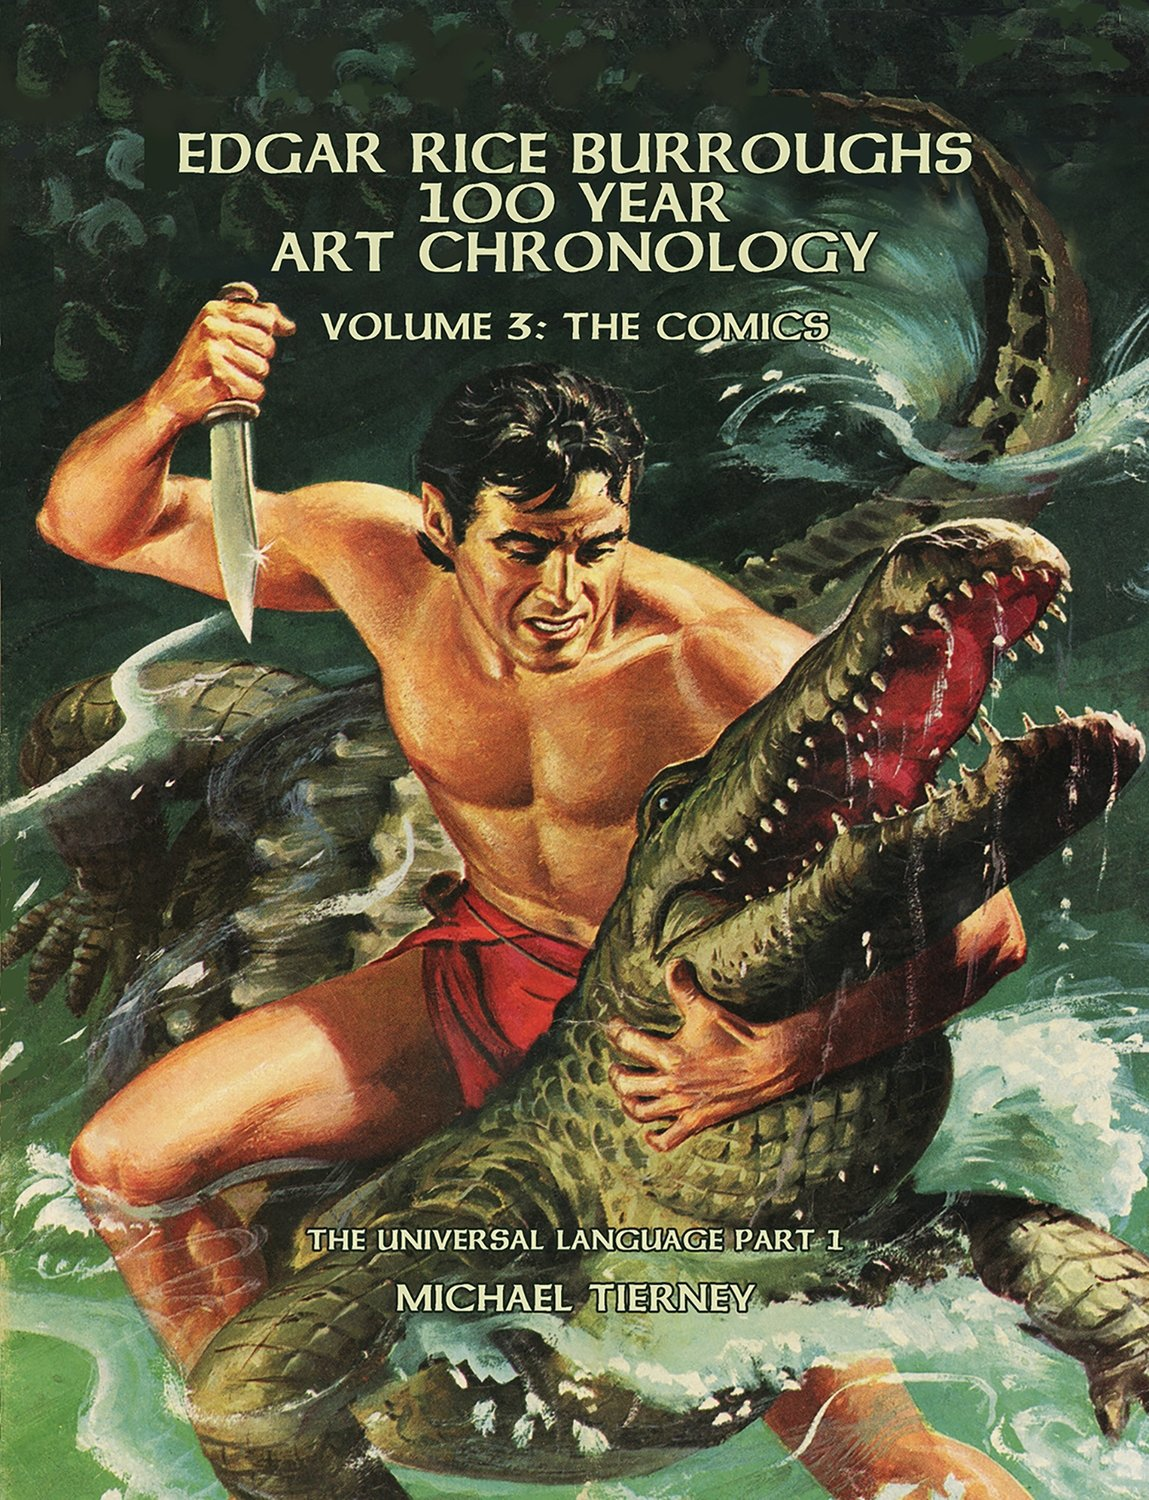 Edgar Rice Burroughs 100 Year Art Chronology Digital Vol. 3